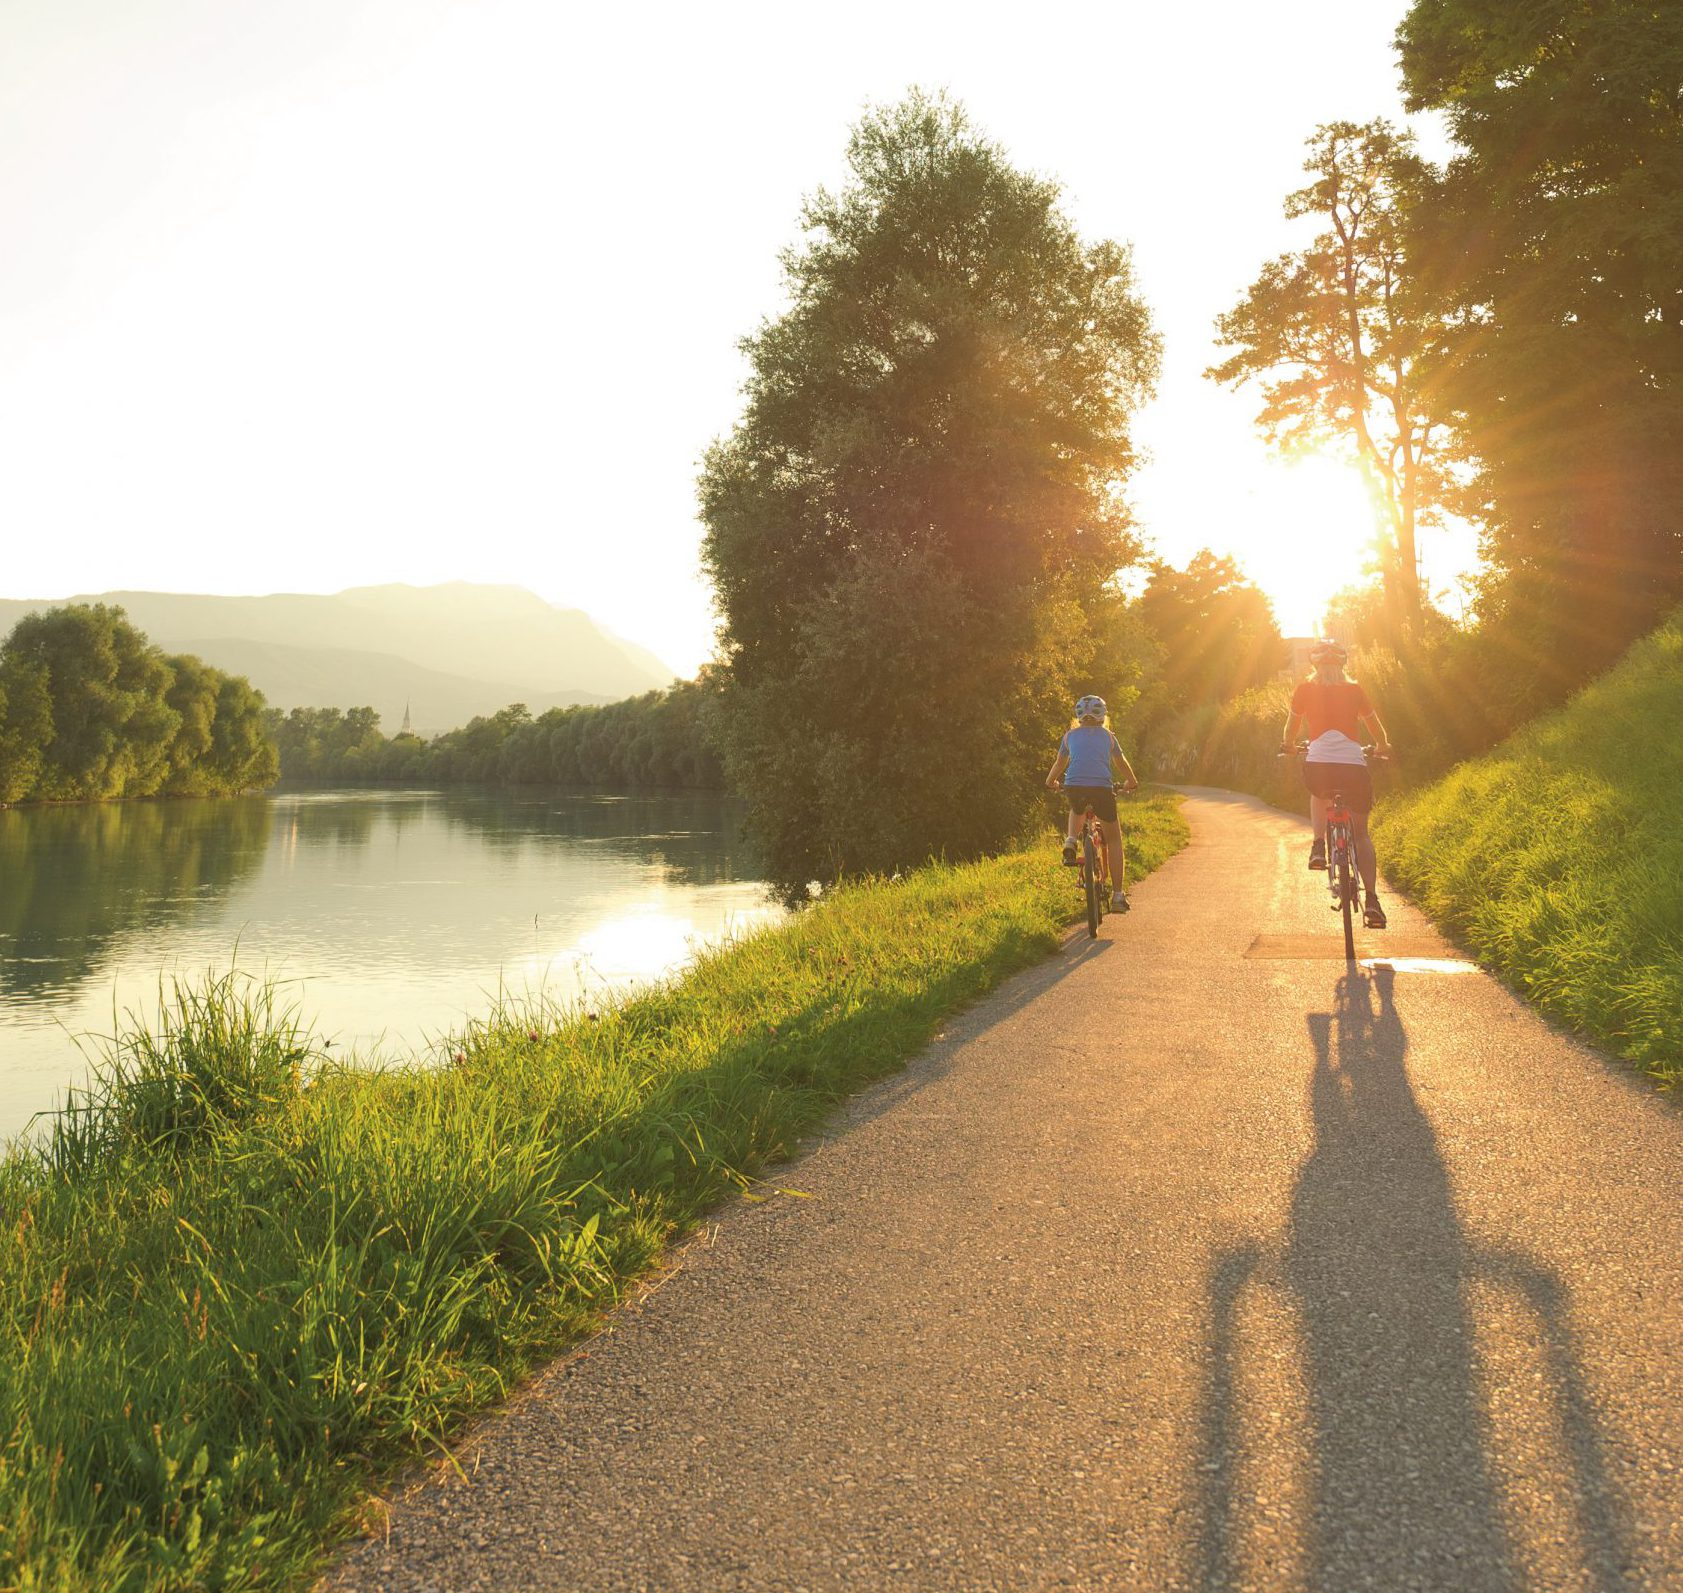 The Drau cycle path, which has been awarded 5 stars by the ADFC, is particularly family-friendly - a holiday for the whole family